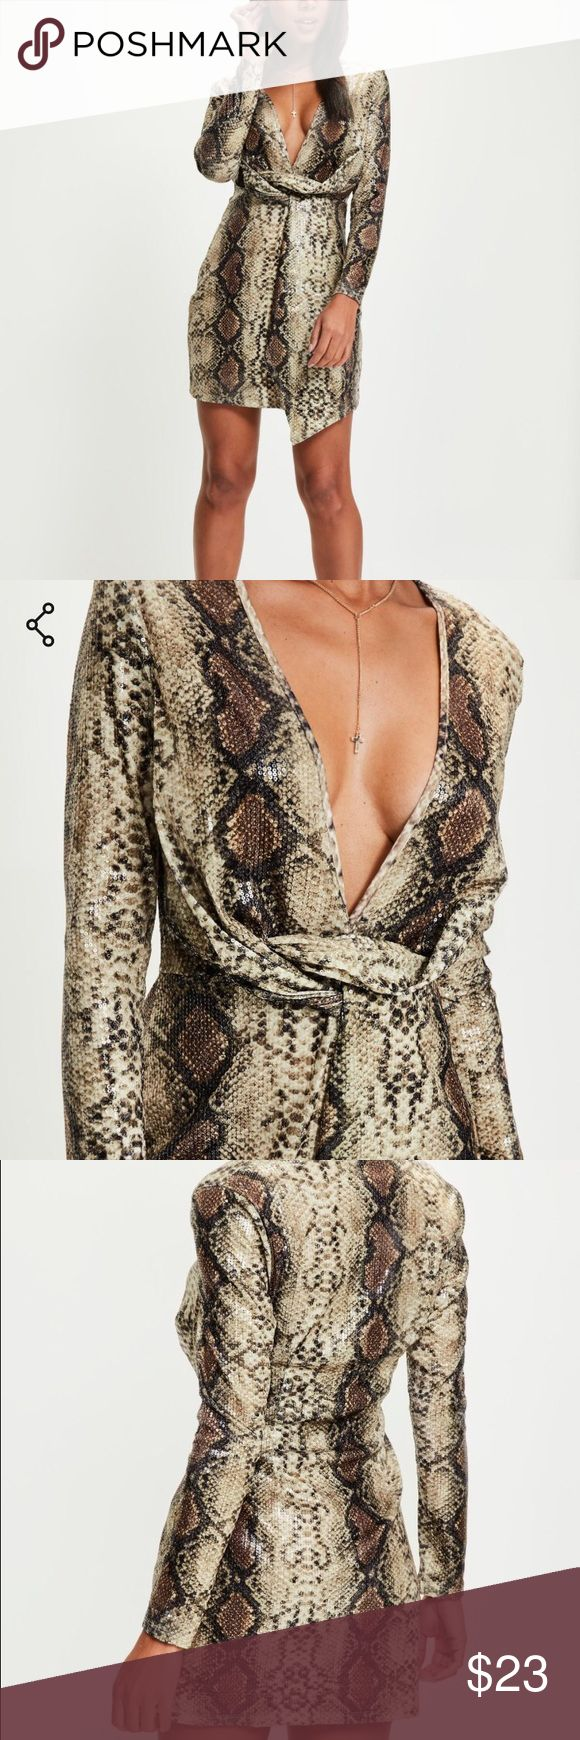 Animal Print Sequin Dress Did you see the Balmain Autumn/Winter 2017 show?? Well it's all about low cuts and animal print on the runway this year! Get your hands on the look for a much more affordable price :) Tags are still attached Dresses Long Sleeve